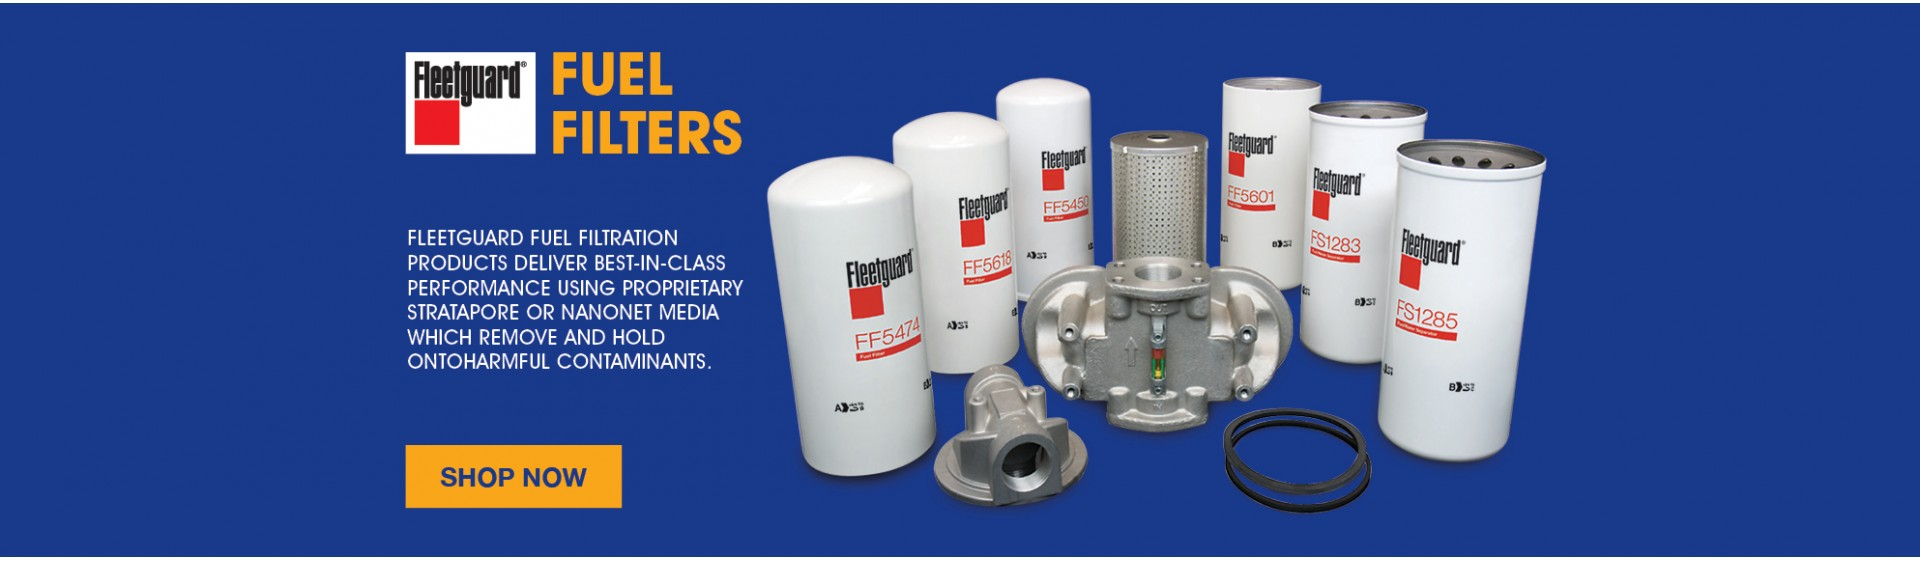 Fleetguard Truck Fuel Filters